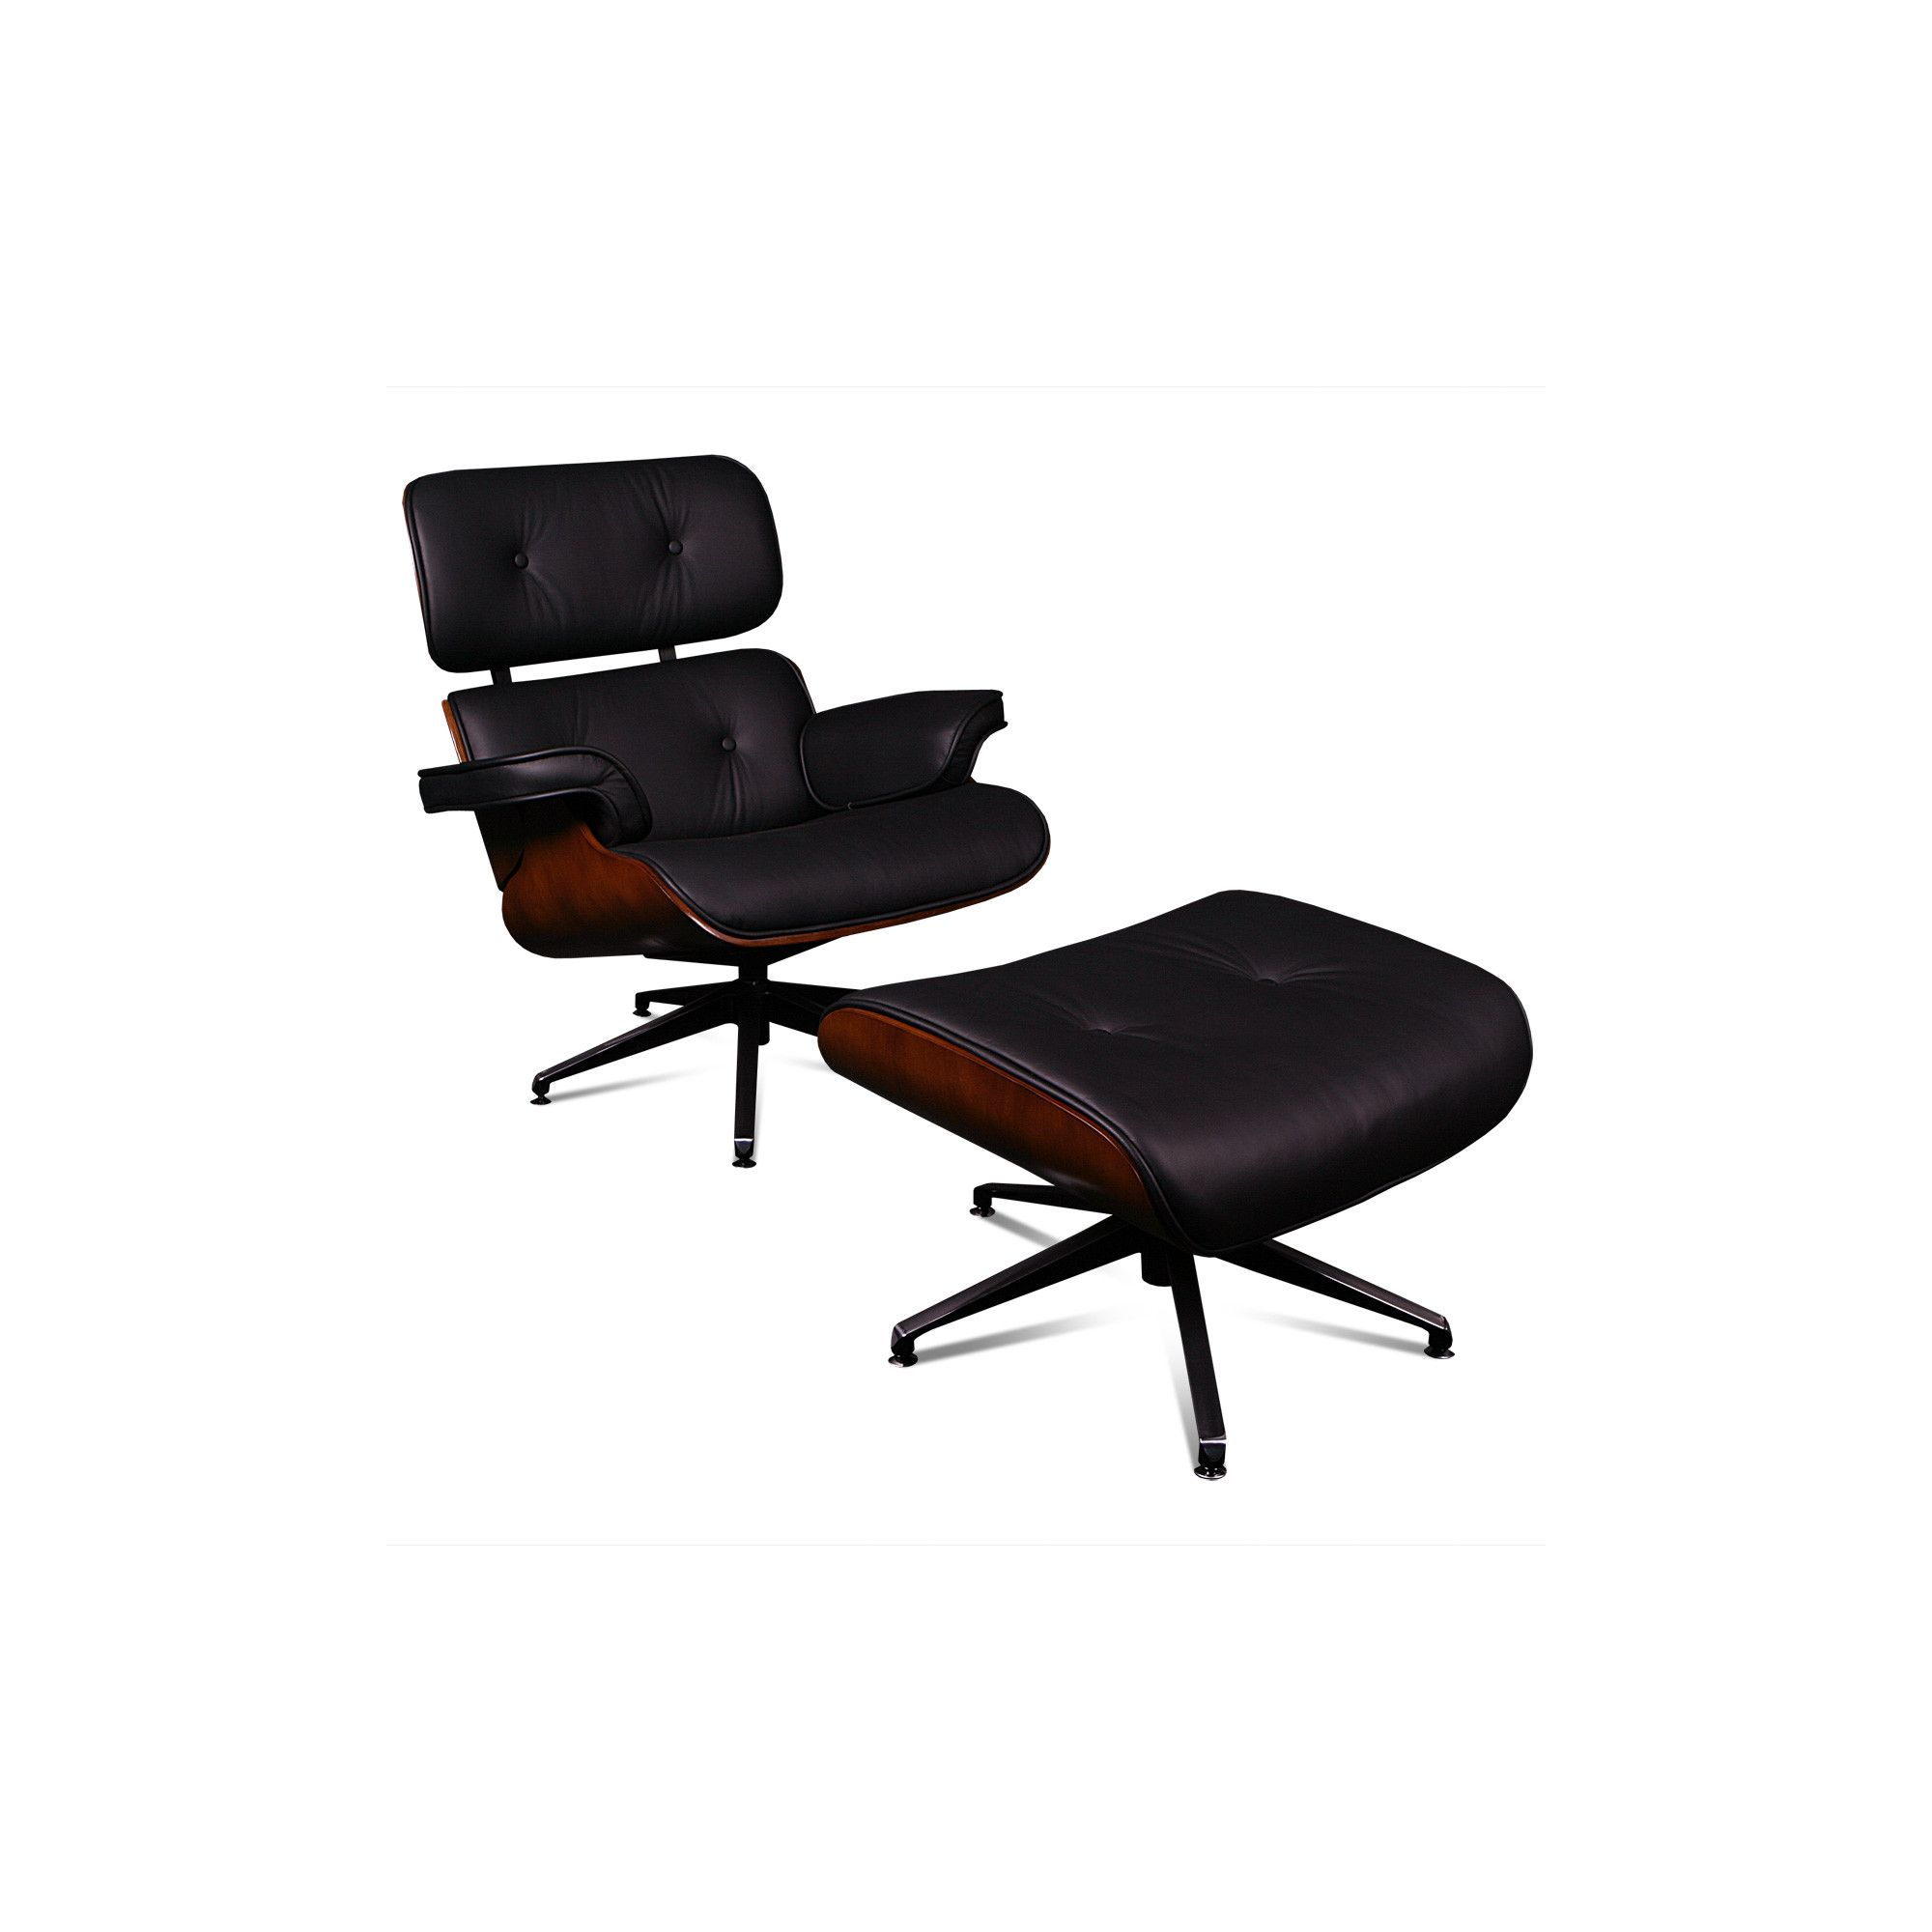 ProMech Racing Classic Leather Lounge Chair and Ottoman - Black